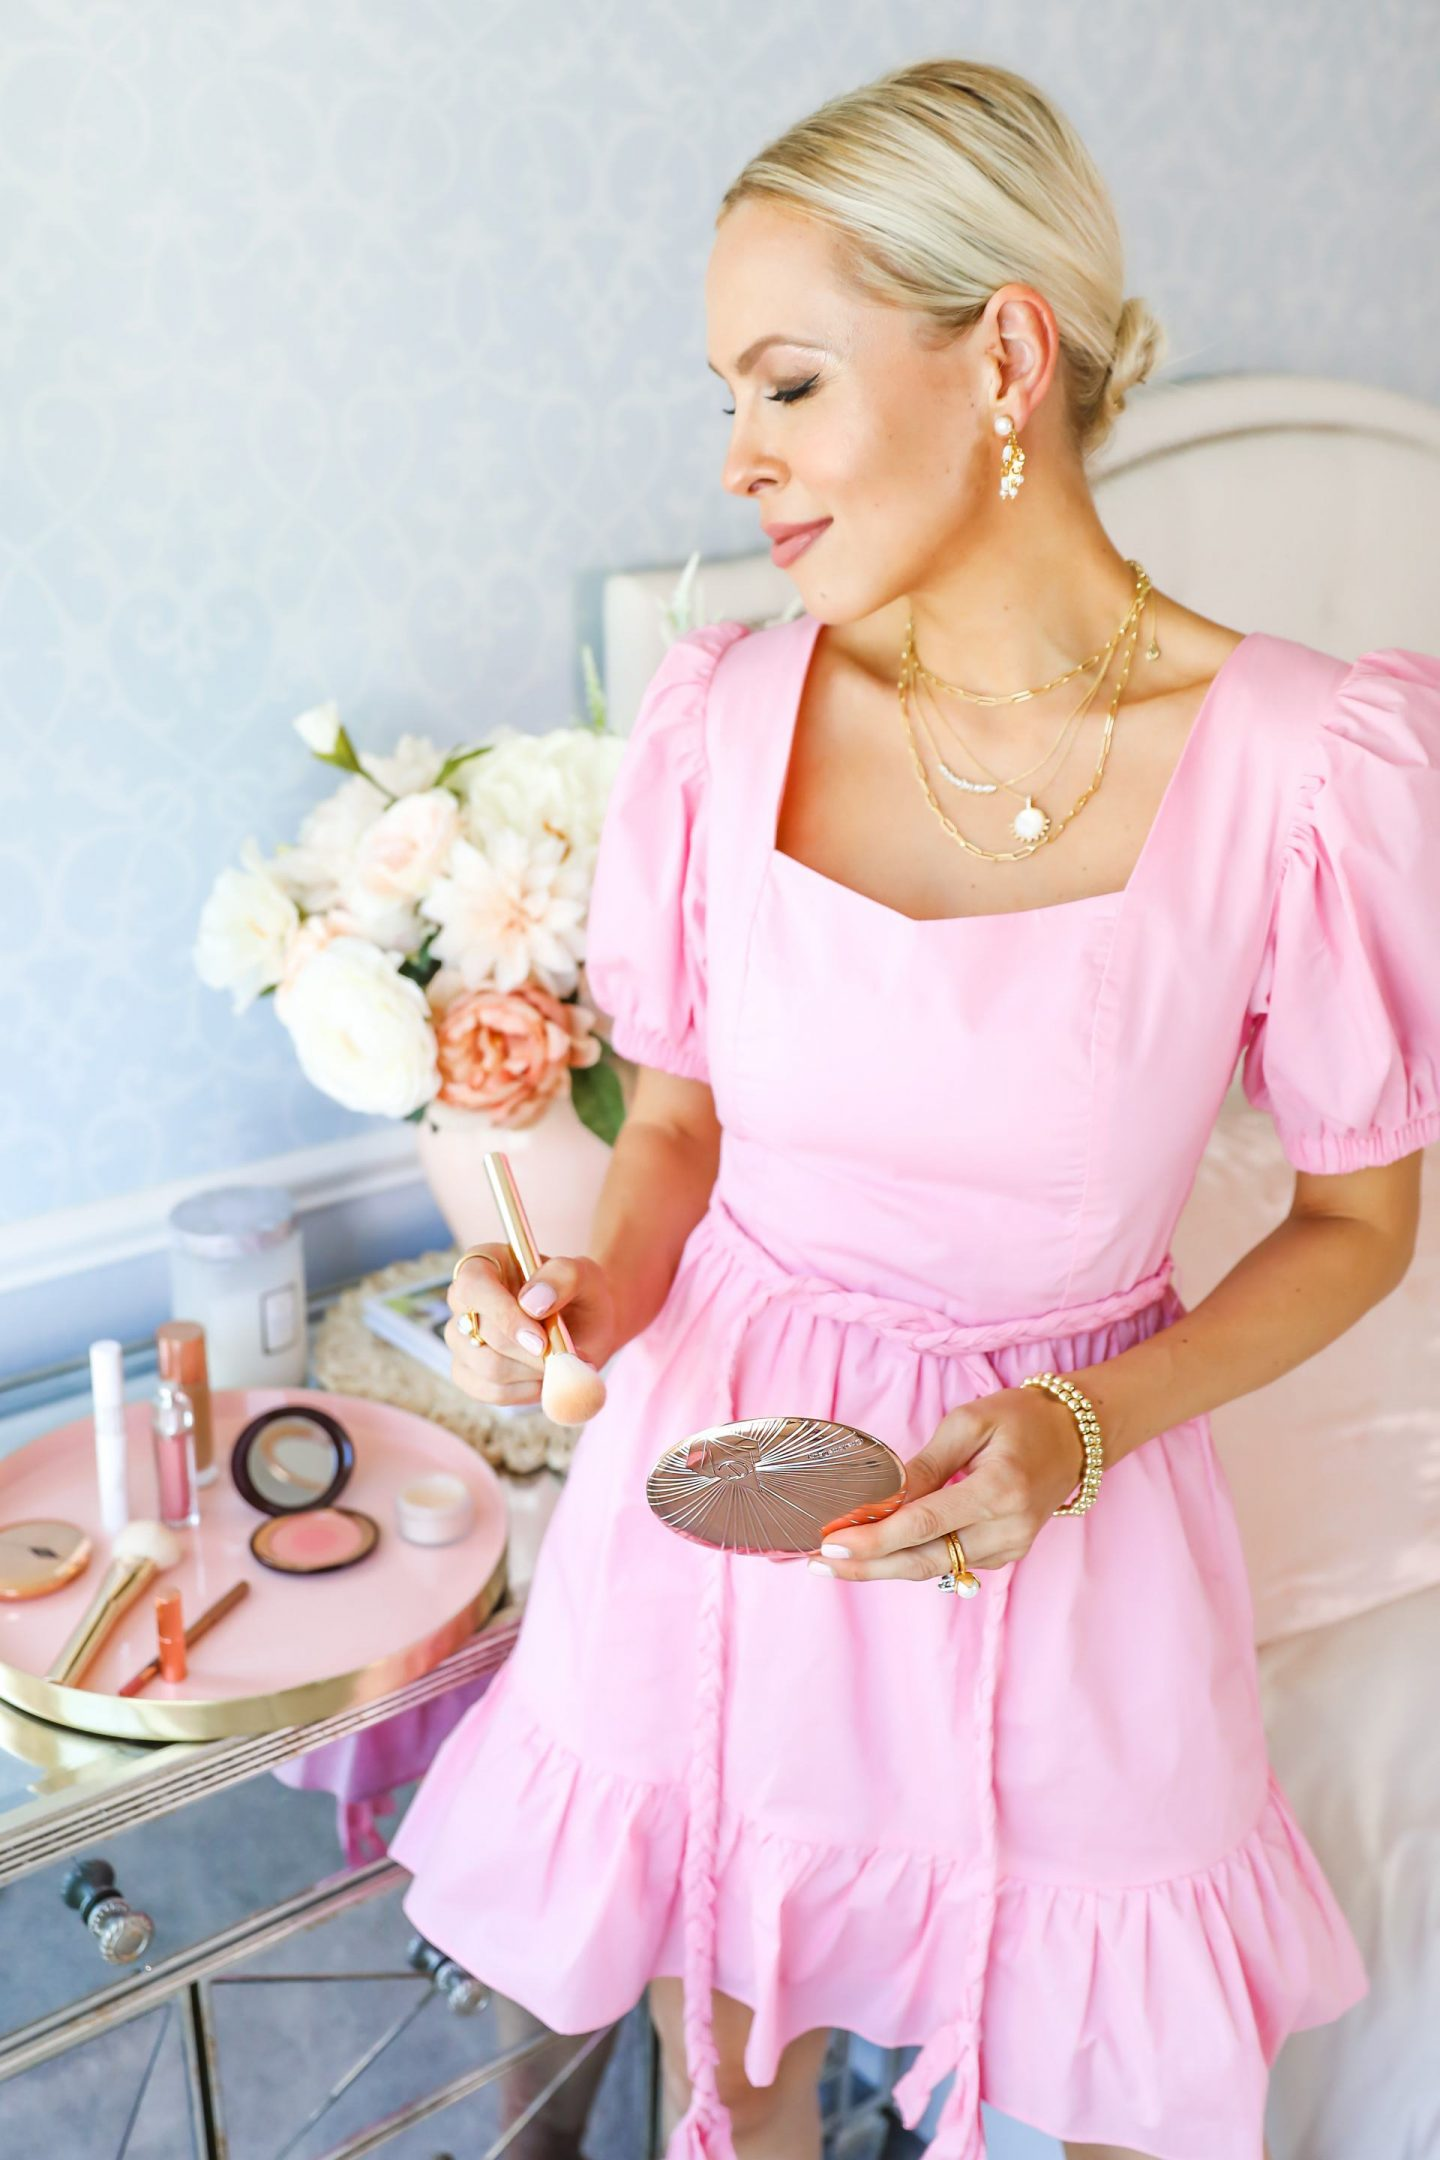 Nordstrom make-up favorite products for summer, featured by San Francisco style blogger Lombard and Fifth. Featuring Charlotte Tilbury bronzing powder, dior addict lip gloss, and urban decay naked eye palette.